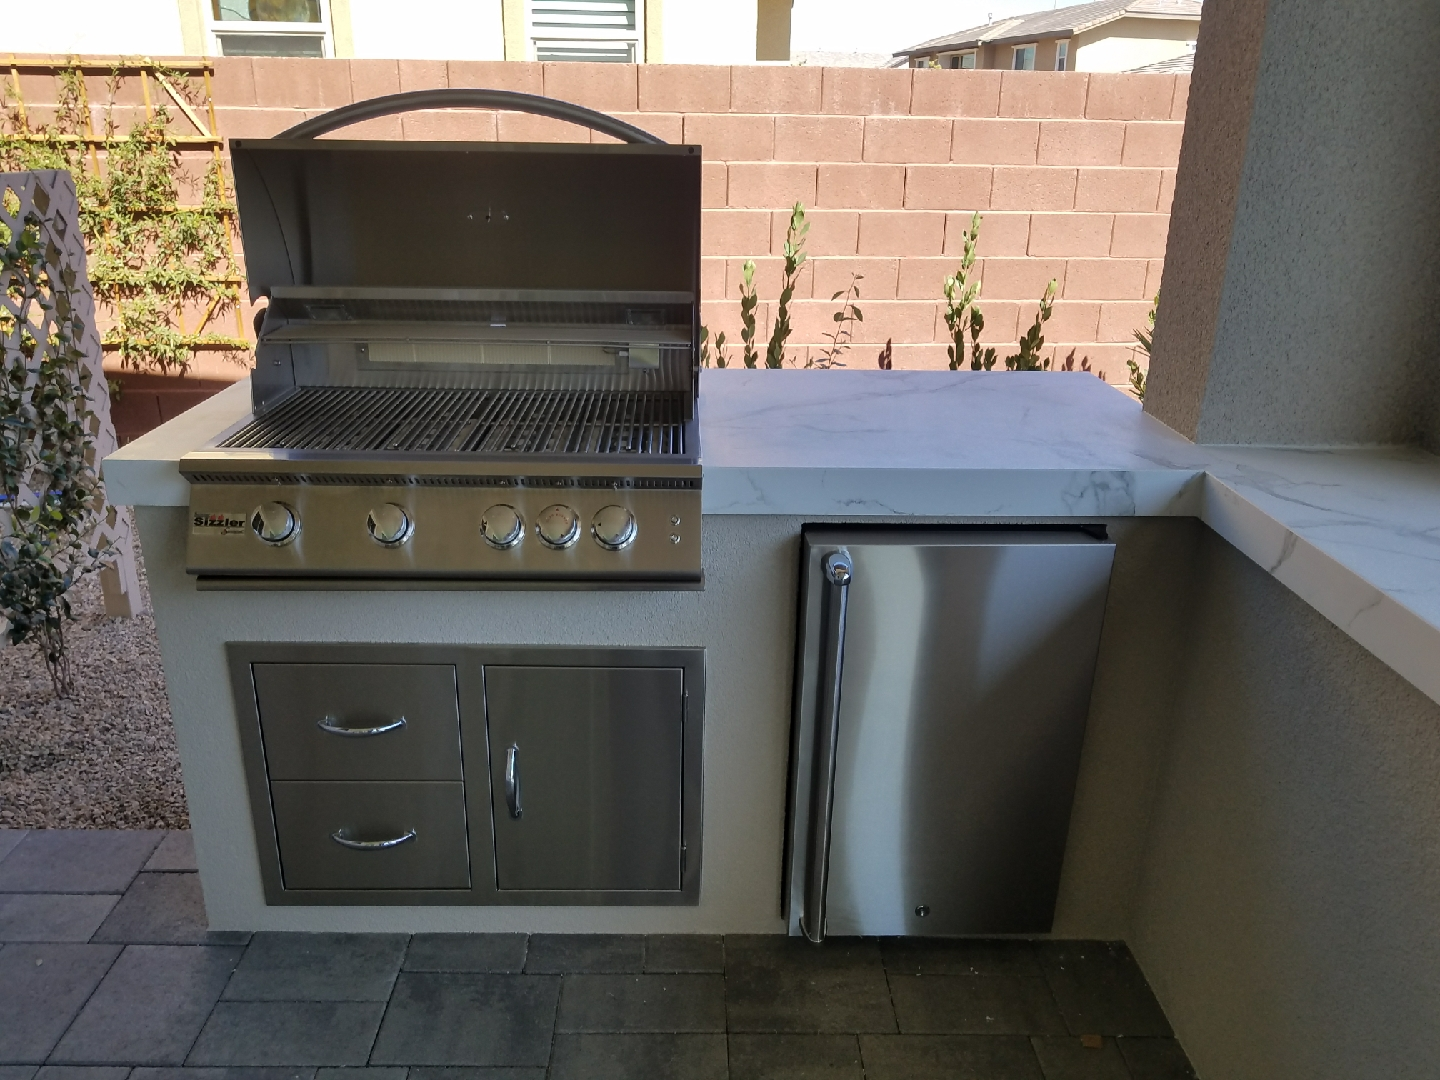 Summerset Sizzler 32 Inch Built In Barbecue Grill With Open Hood